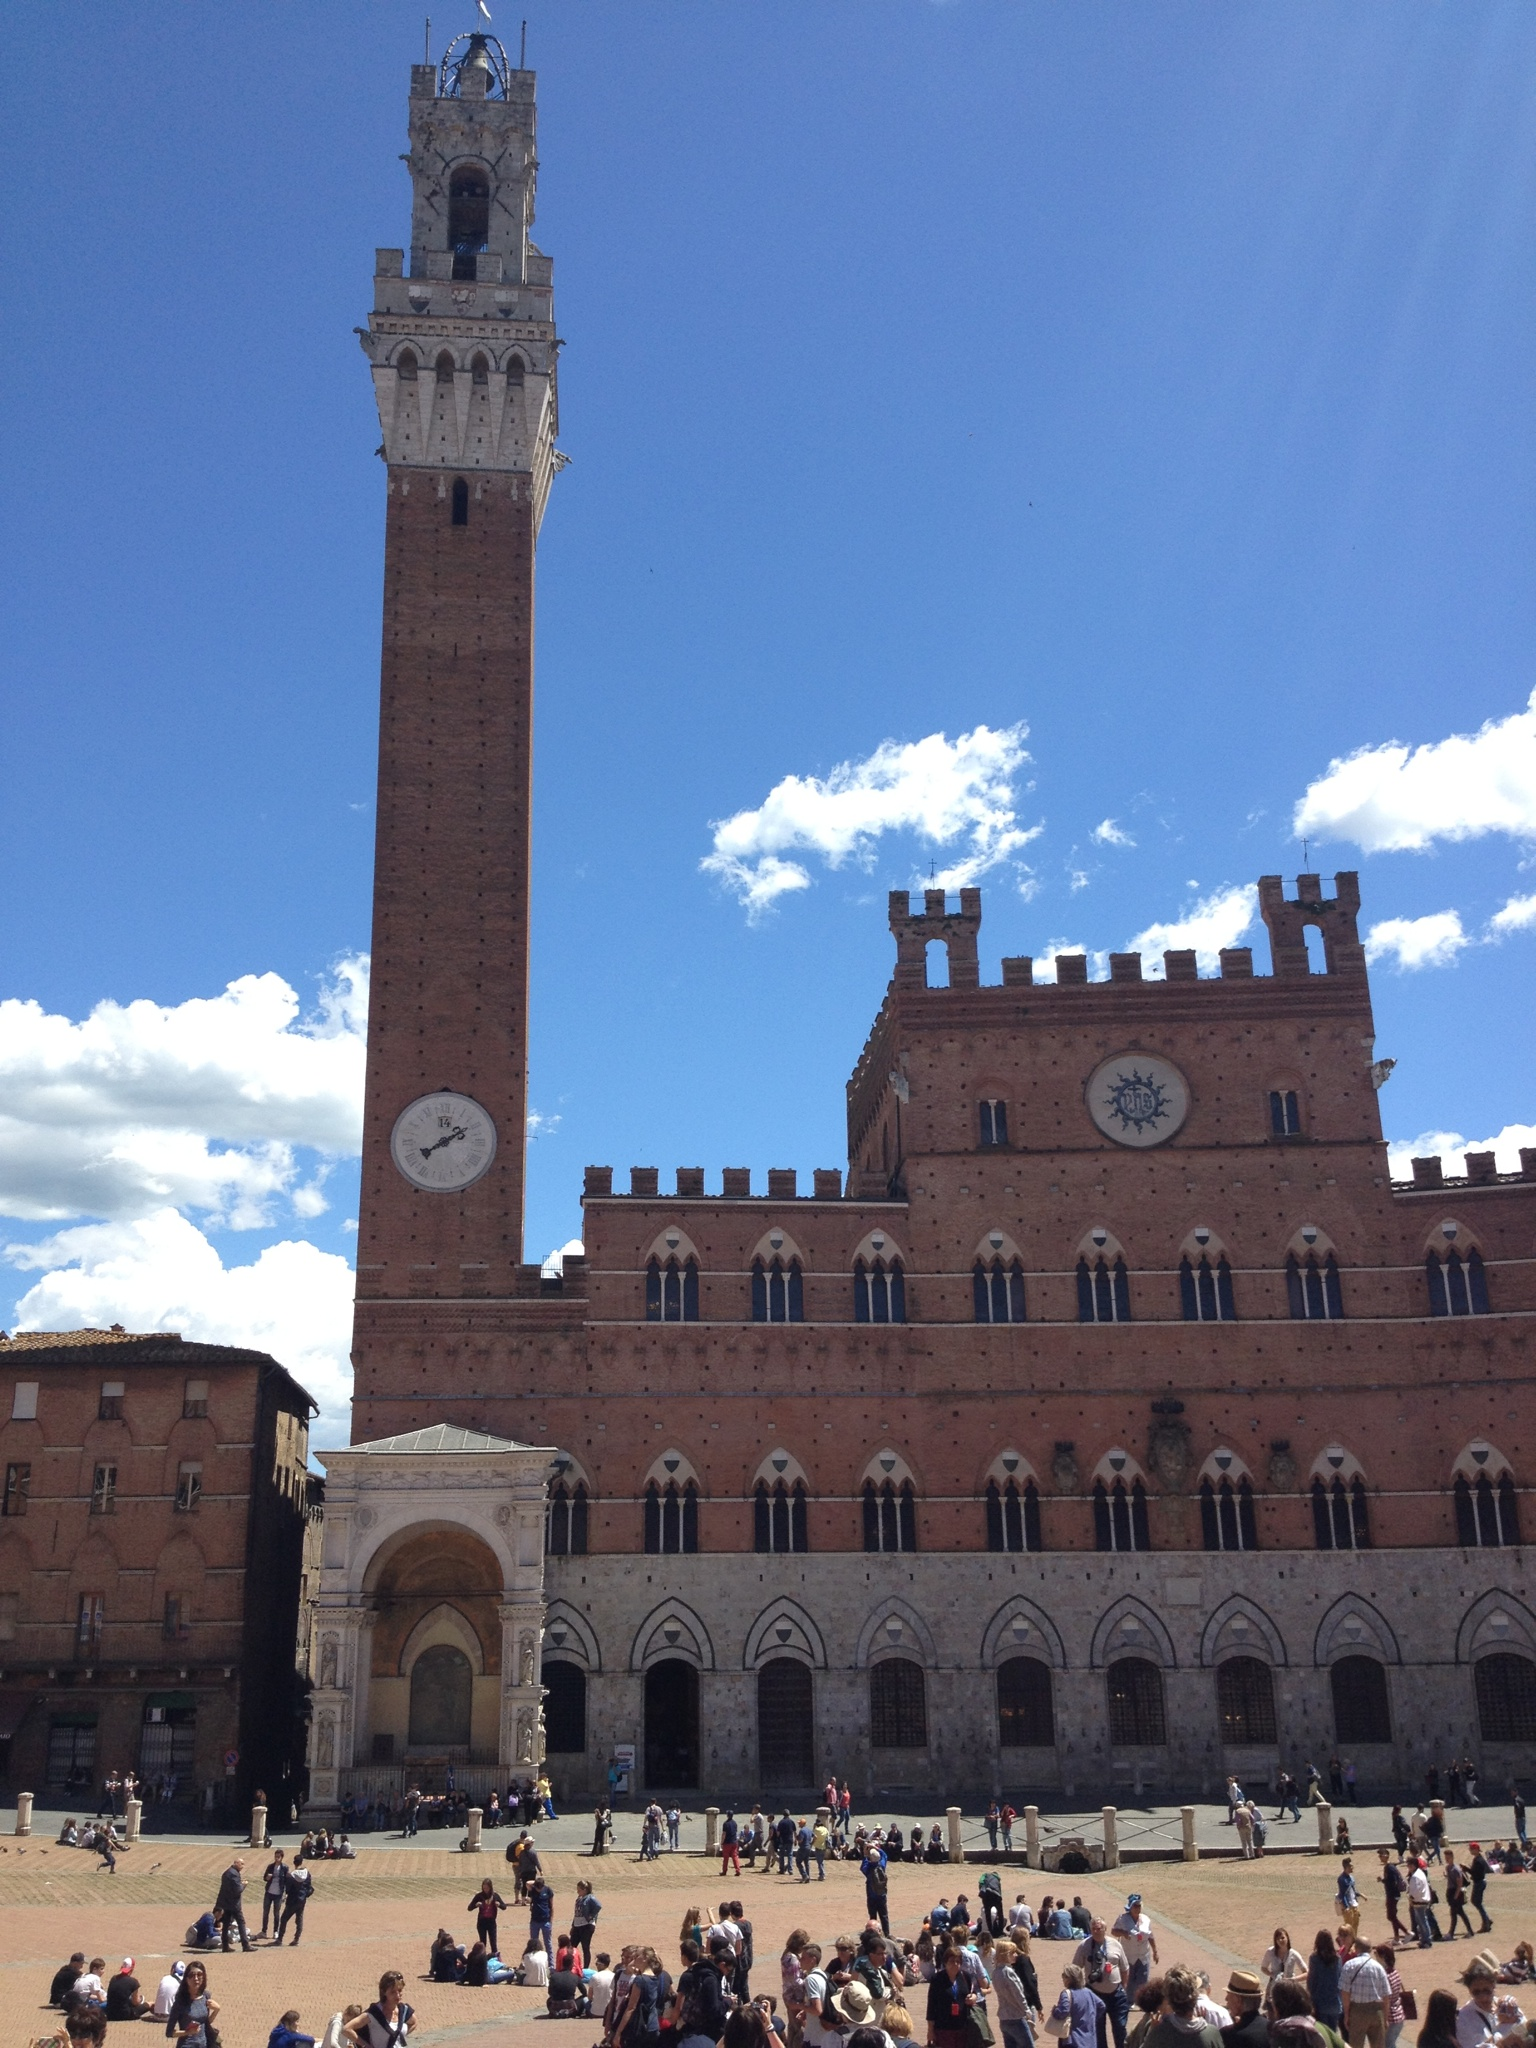 The plaza in Siena